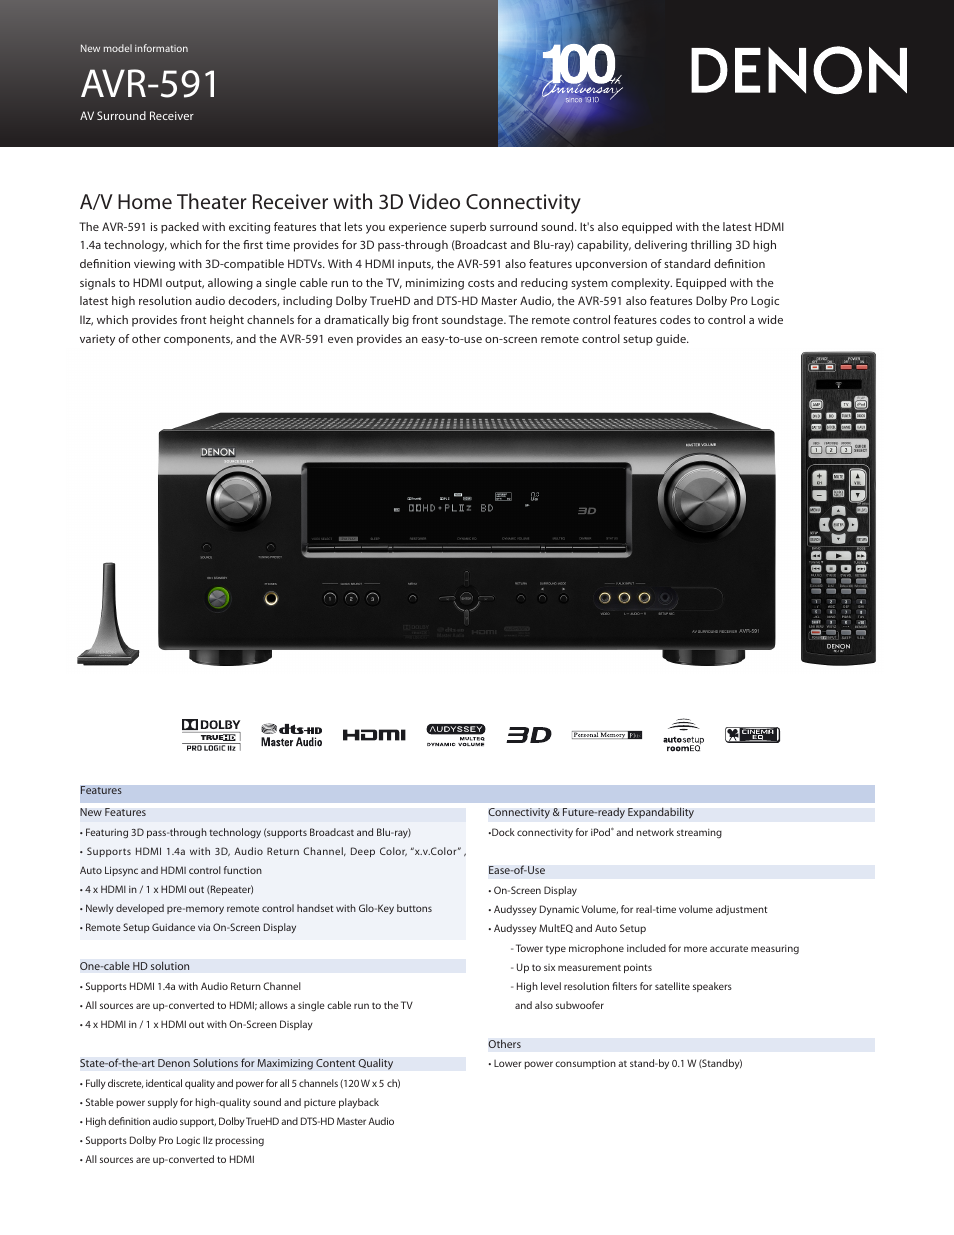 denon avr 591 user manual 2 pages rh manualsdir com denon receiver avr 591 manual denon avr-591 service manual